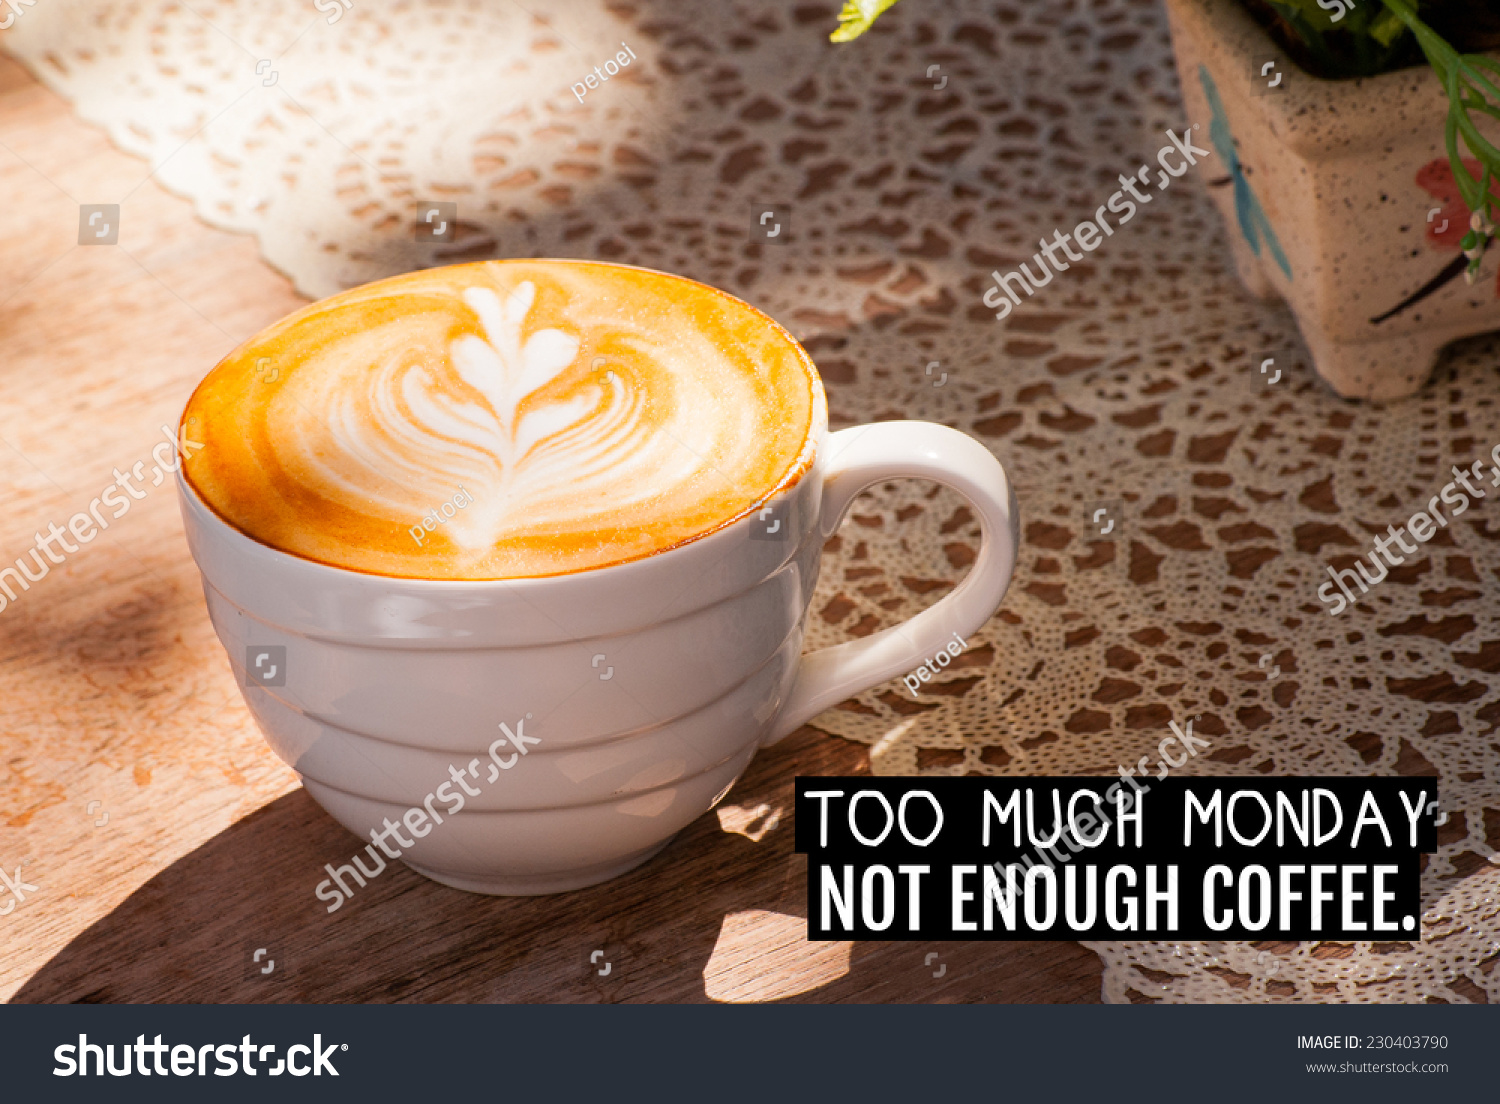 Beautiful Inspirational Quote By Unknown Source On A Cup Of Coffee Background